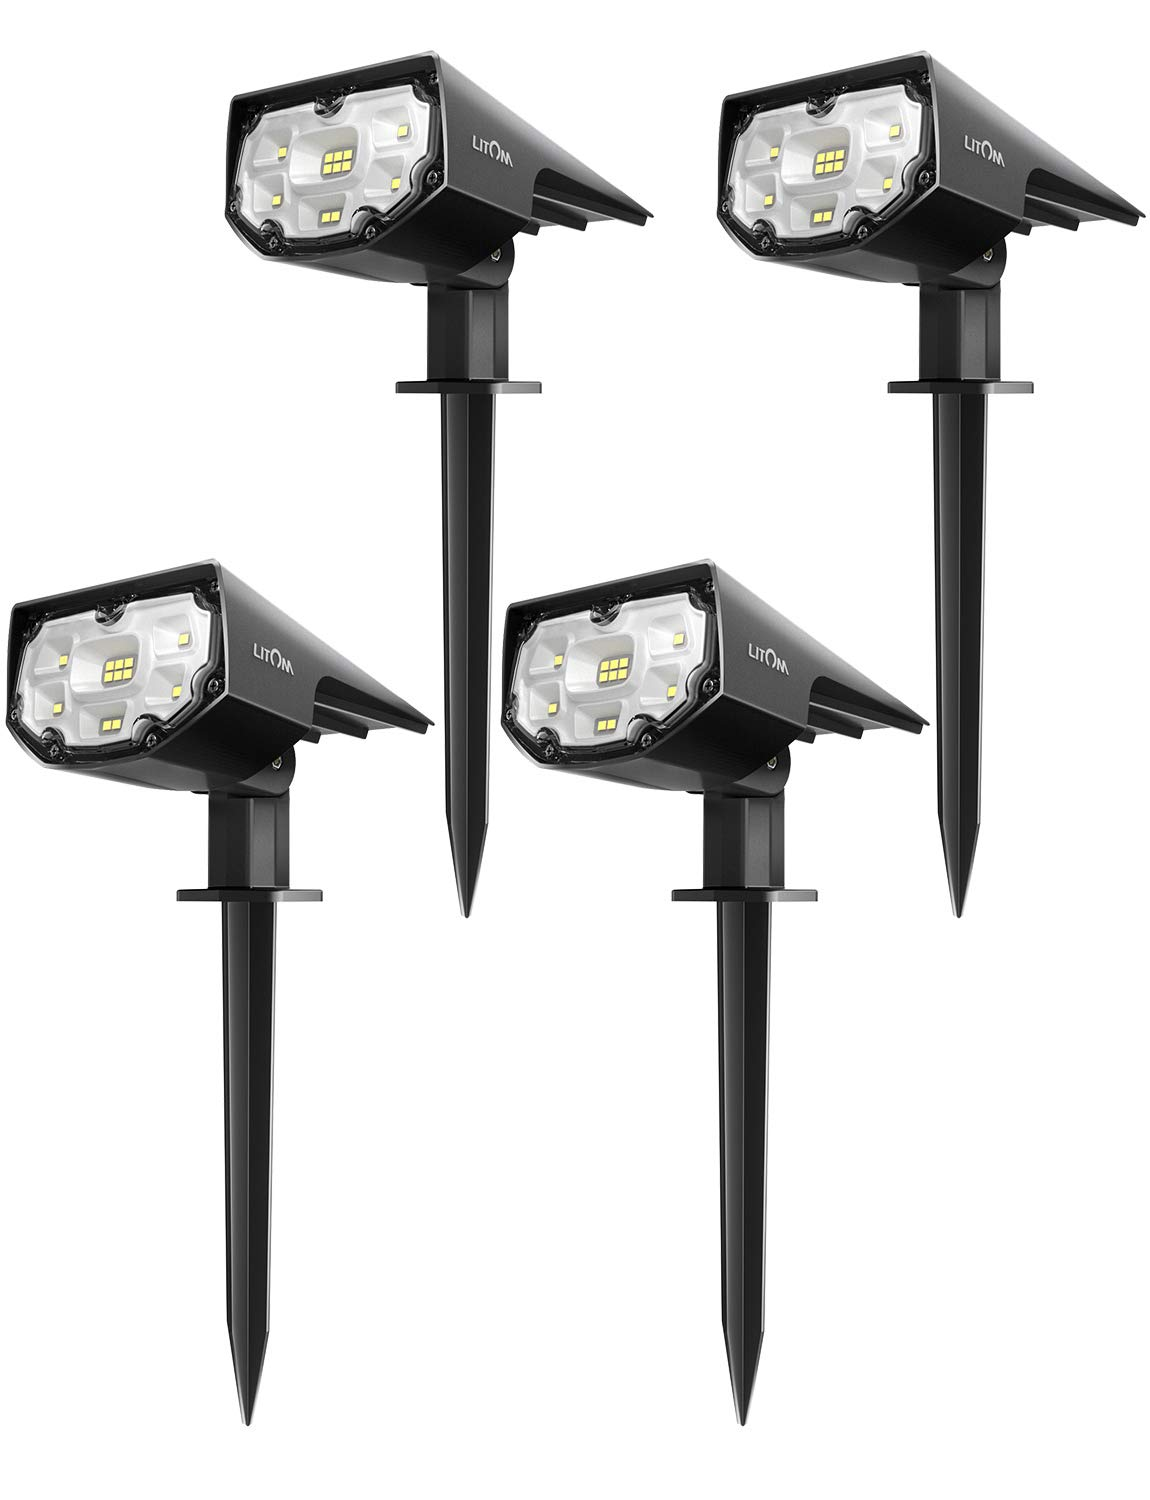 LITOM Solar Landscape Spotlights 12 LED for trees